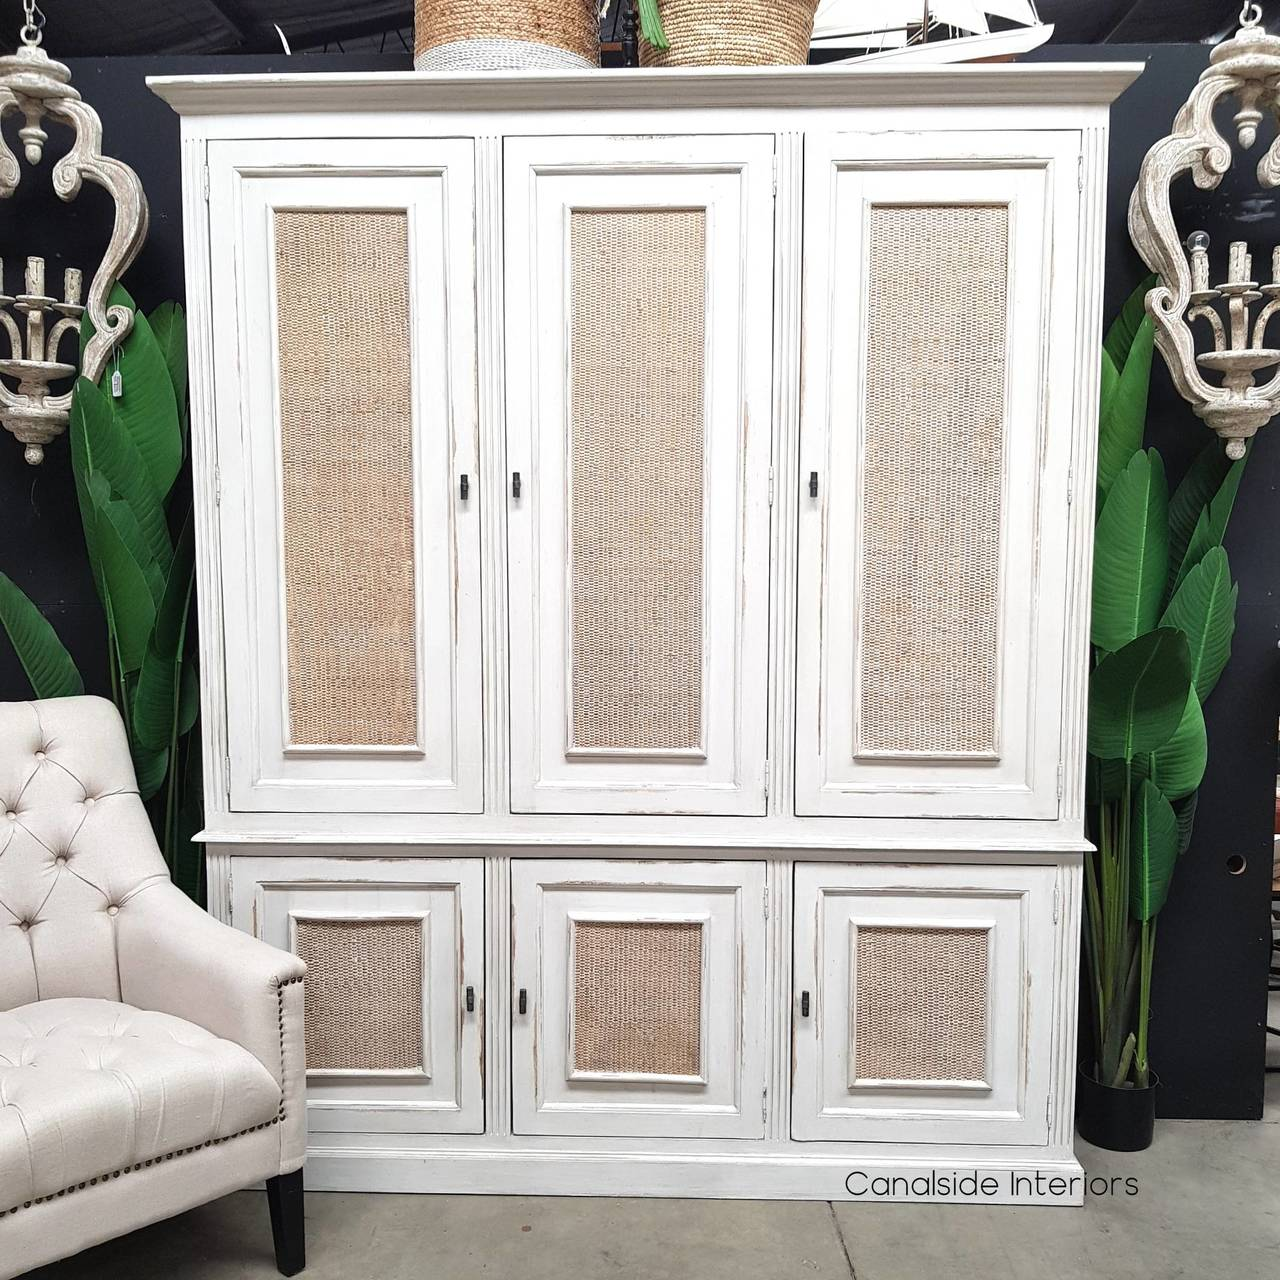 Brielle Rattan Storage Cupboard  HAMPTONS Style, PLANTATION Style, LIVING Room, LIVING Cupboards & Bookcases, STORAGE, STORAGE Bookshelves & Cupboards, PLANTATION STYLE